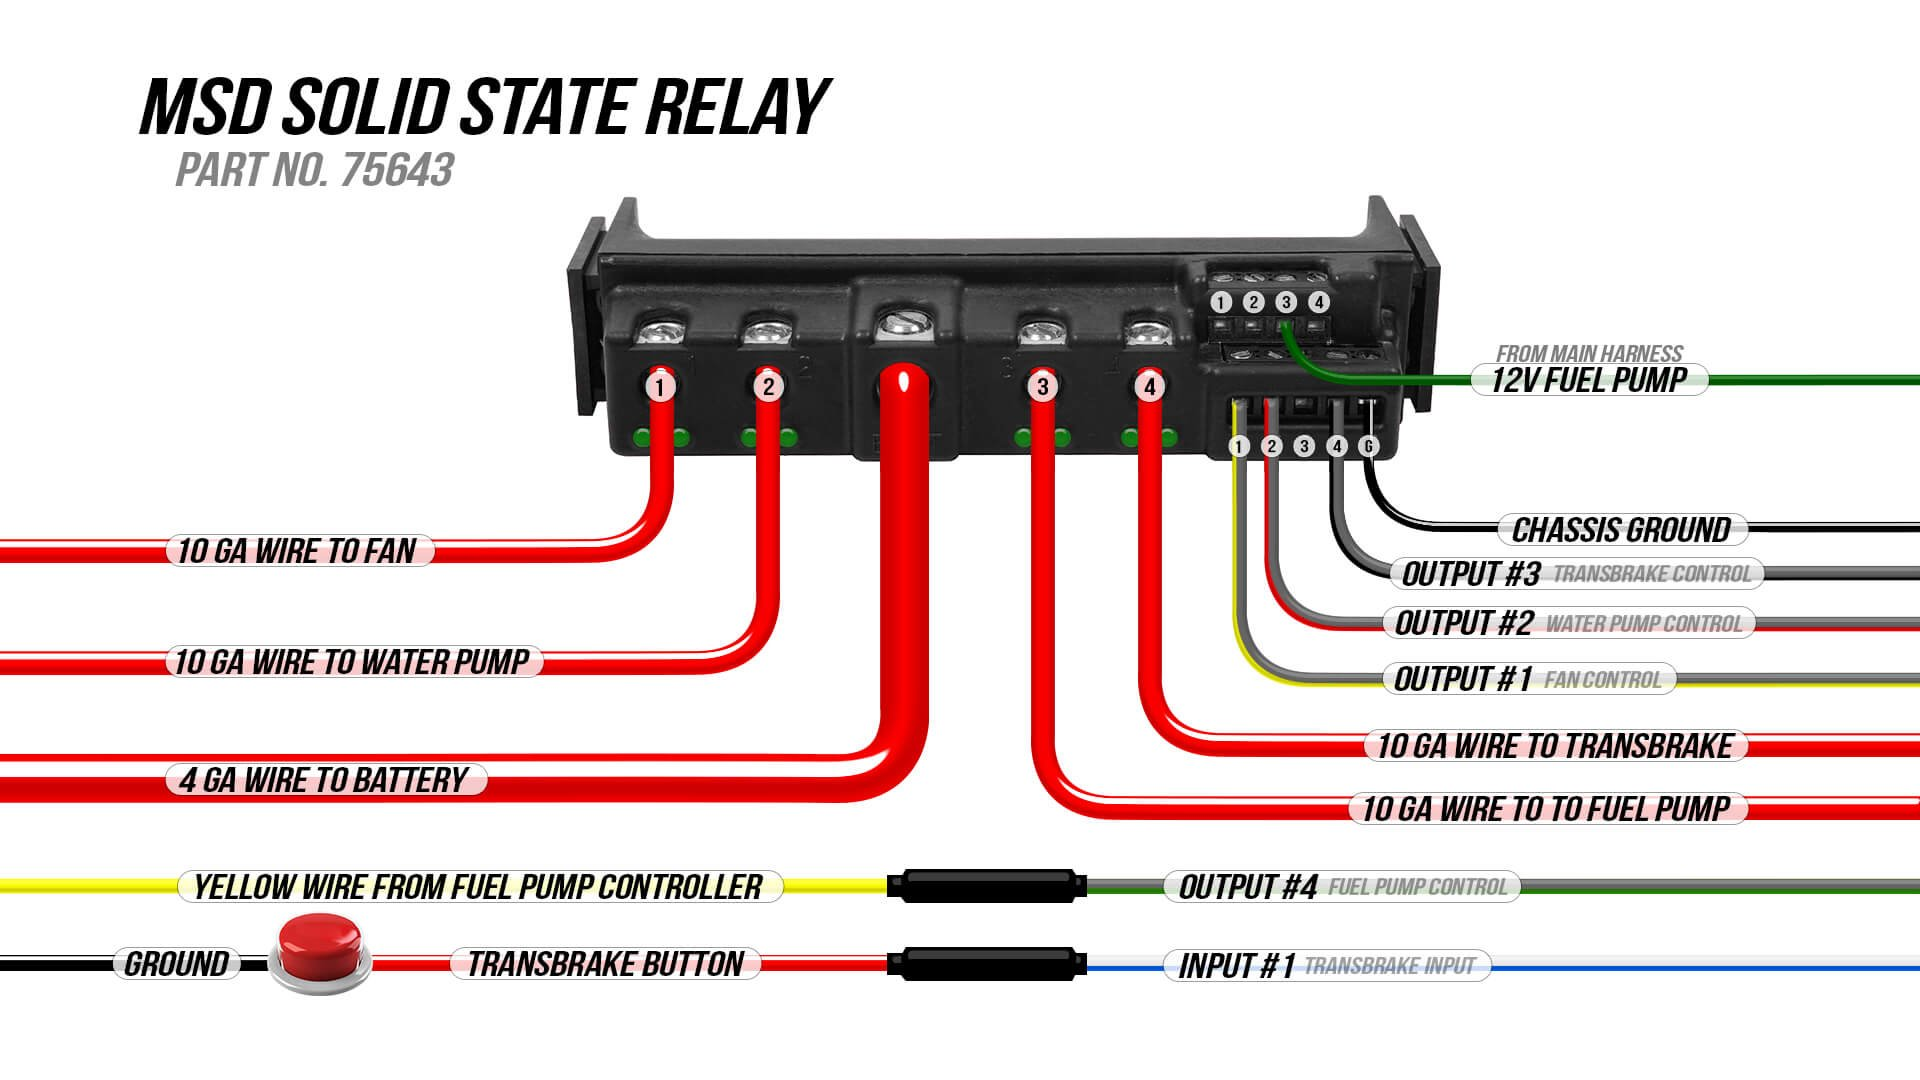 Wiring Diagram  Msd Solid State Relay